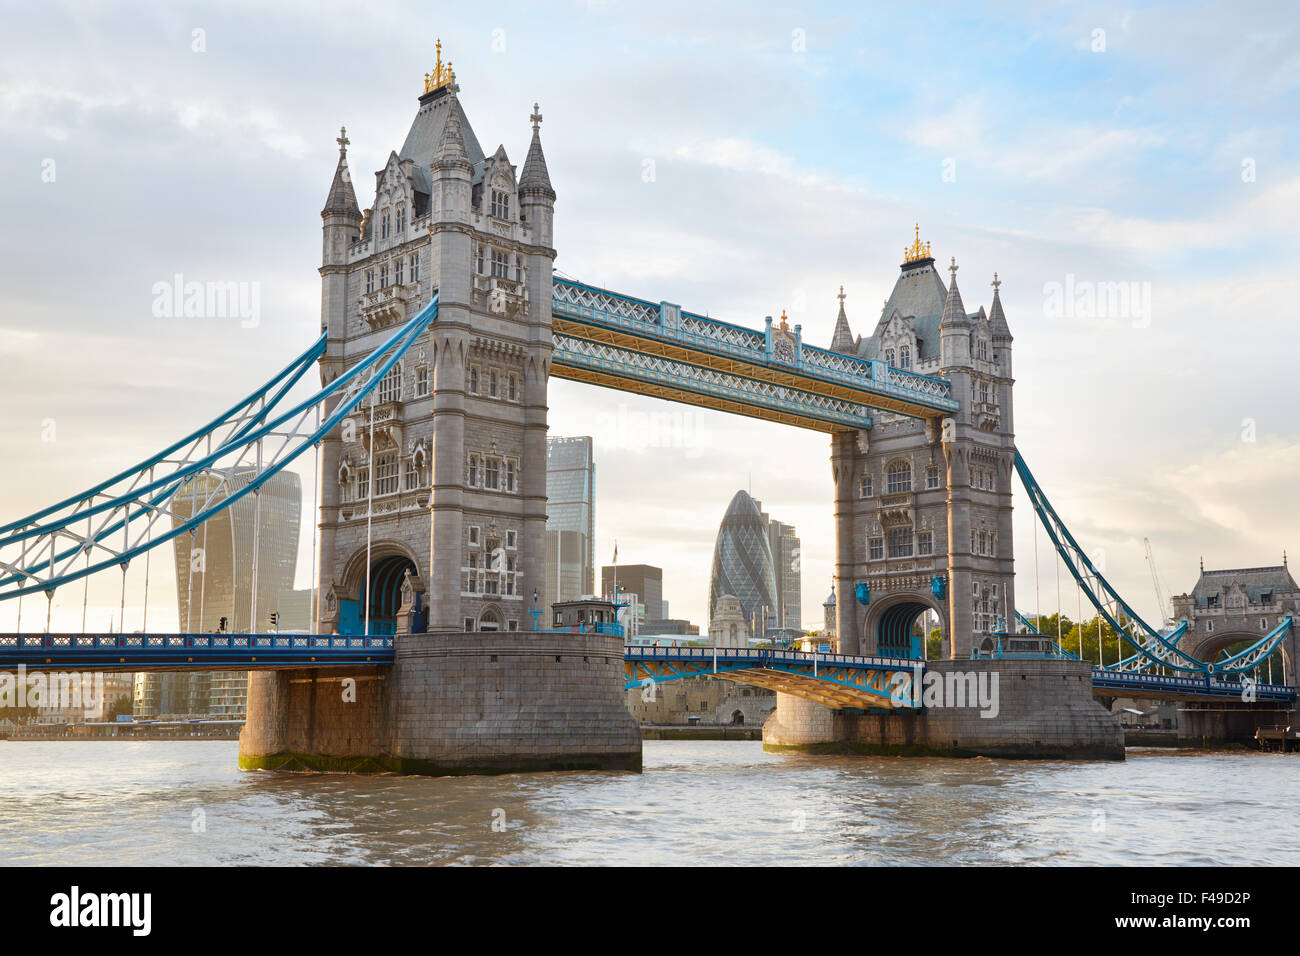 Tower bridge in London in the afternoon sunlight with skyscrapers view - Stock Image